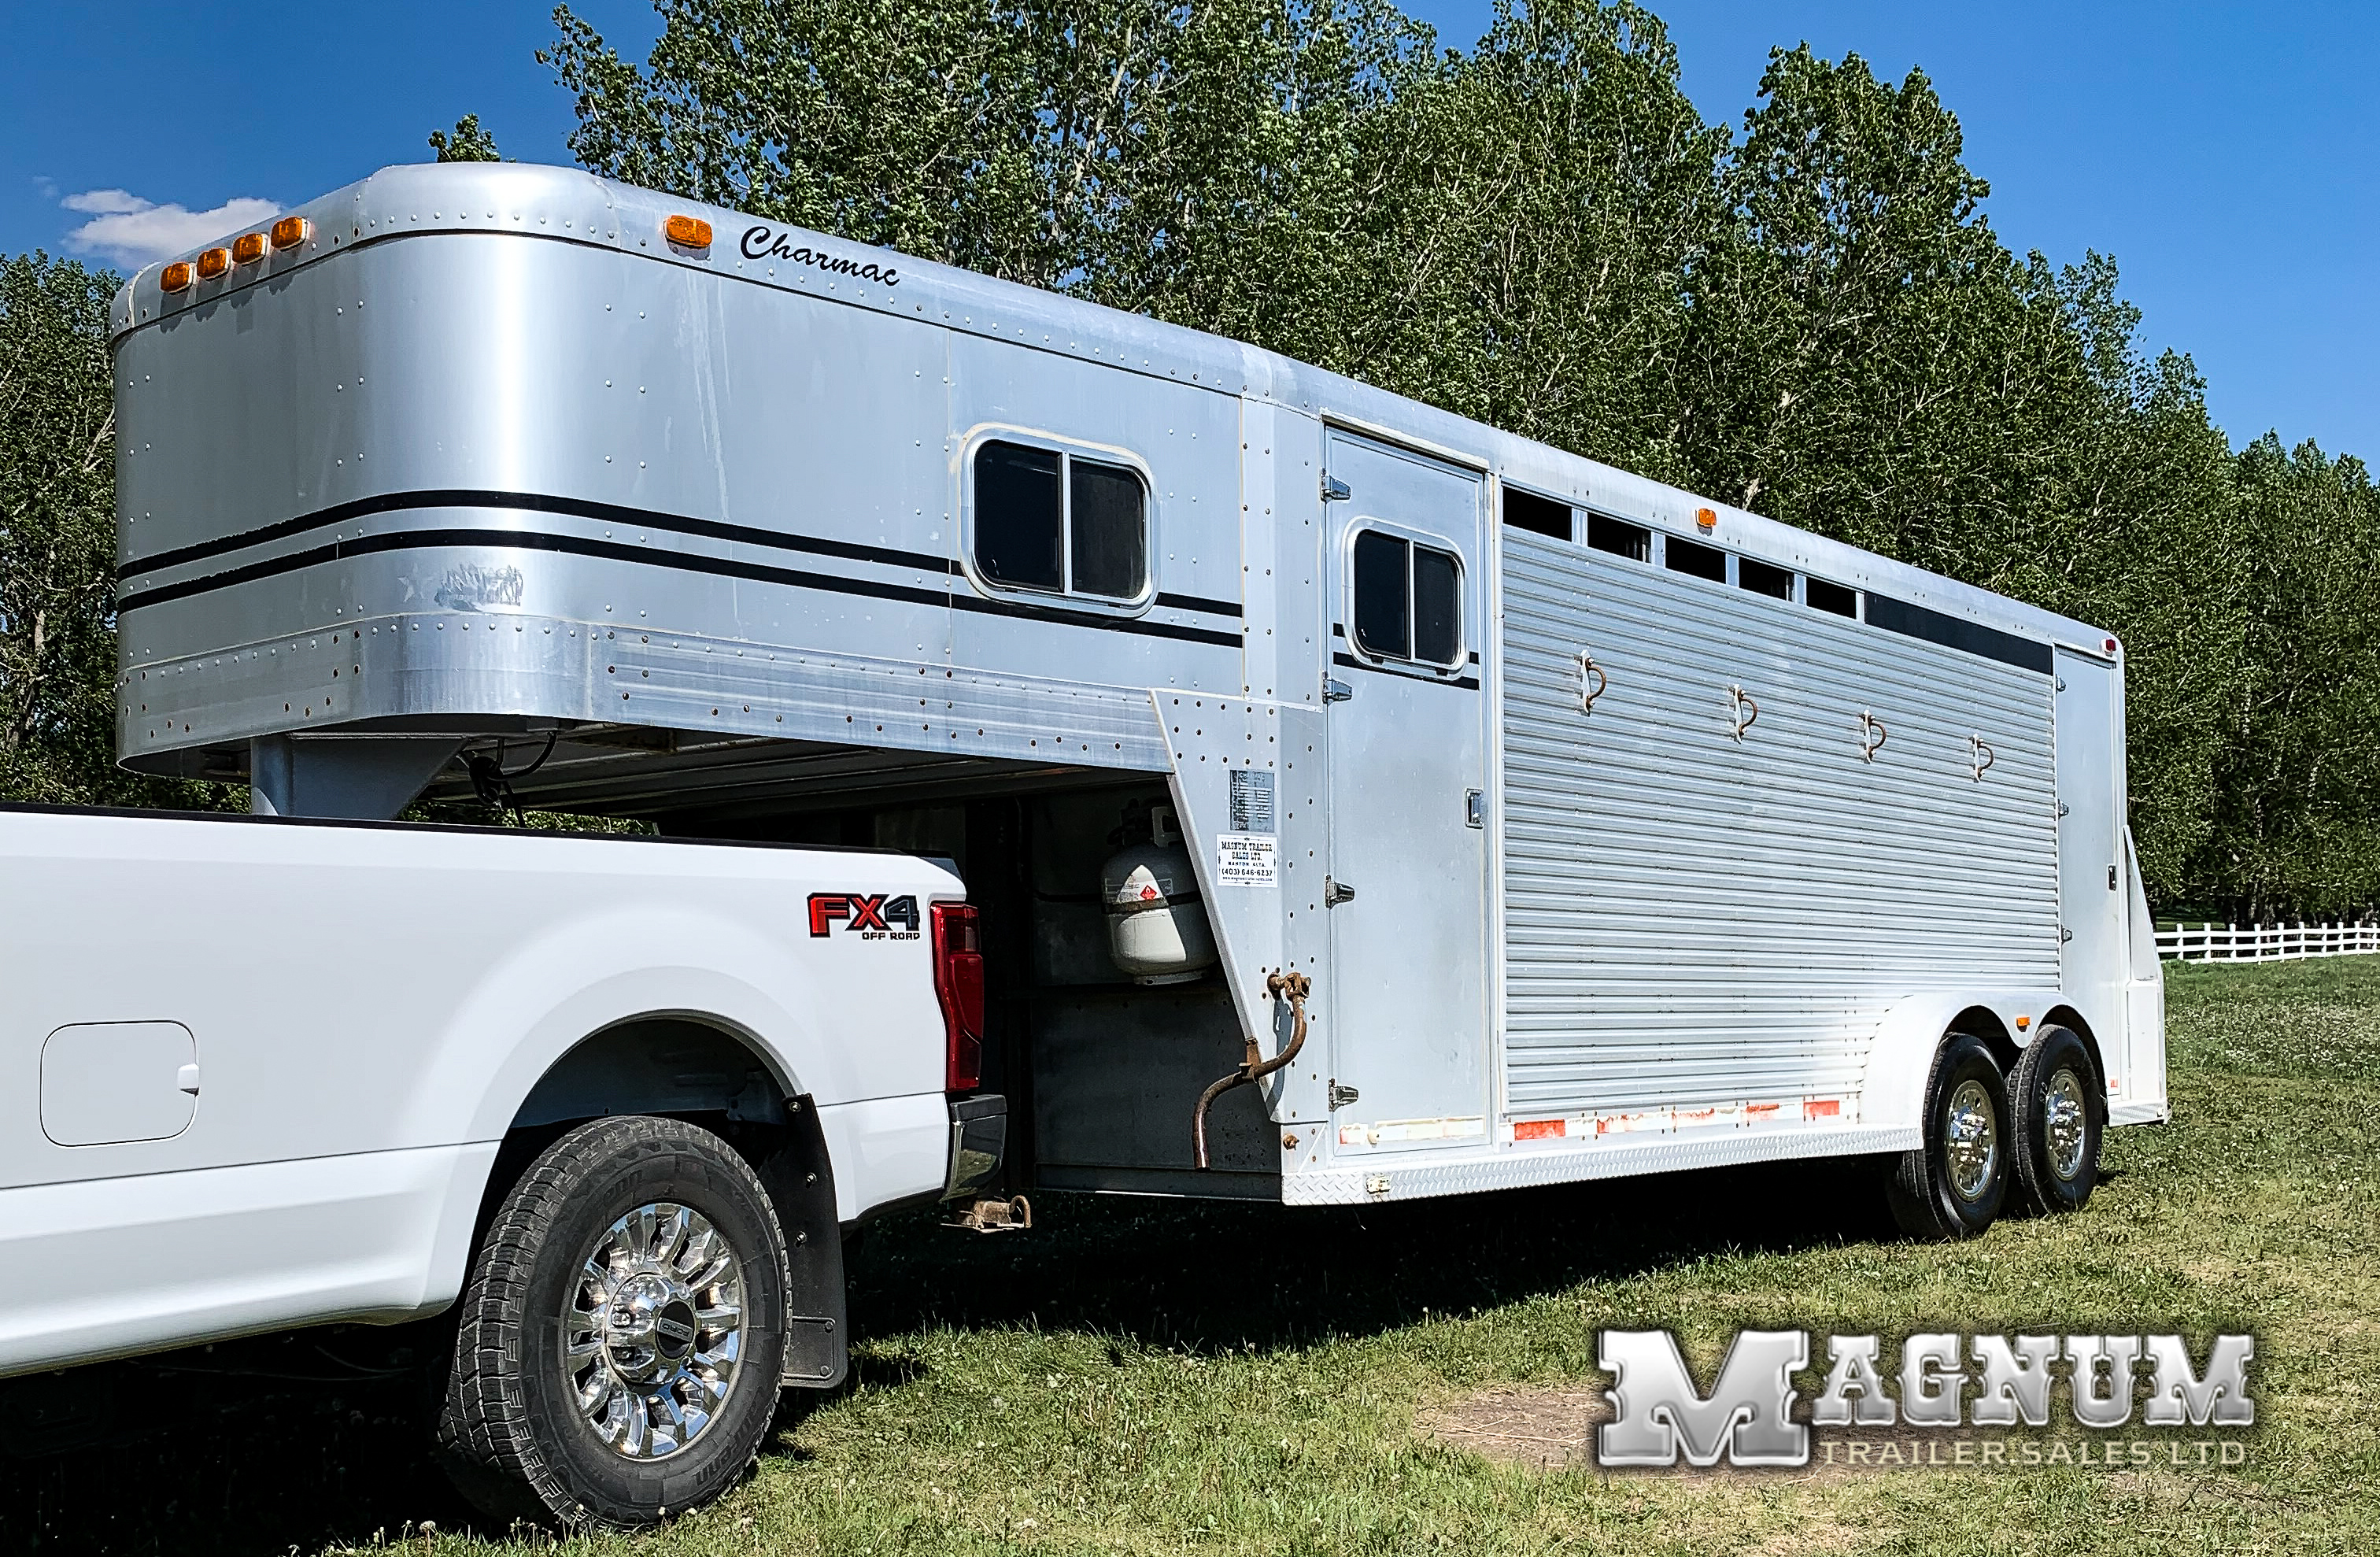 1994 Charmac Hock Riveted All Aluminum 4/5 Horse Stock Combo w/ Weekender Package